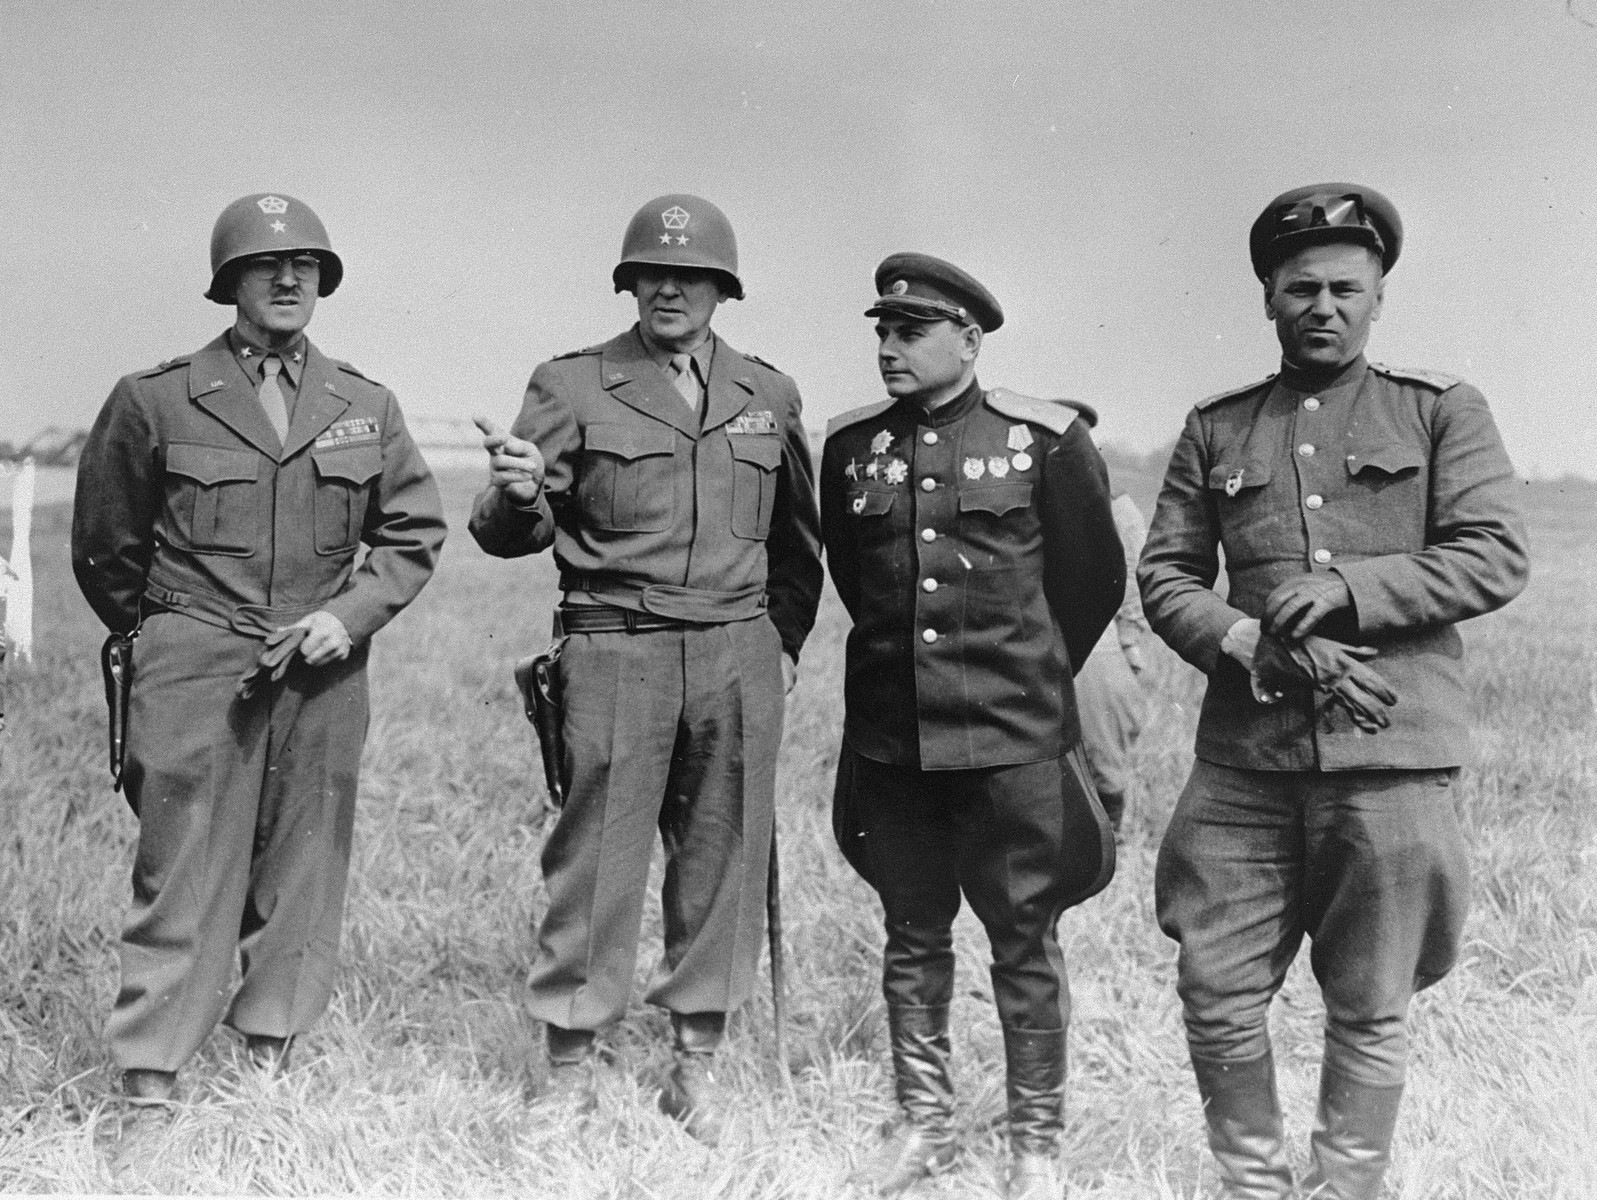 American and Soviet generals pose on the banks of the Elbe River near Torgau, Germany, where the two Allies linked up for the first time.  Pictured from left to right are Brig. Gen. Charles G. Helmick (Artillery General of V Corps), Maj. Gen. Clarence R. Huebner (CG V Corps, First U.S. Army), Lt. Gen. Baclanow (Commanding General Russian 34th Corps), and Maj. Gen. Rusacov (Commanding General Russian 58th Infantry Div).